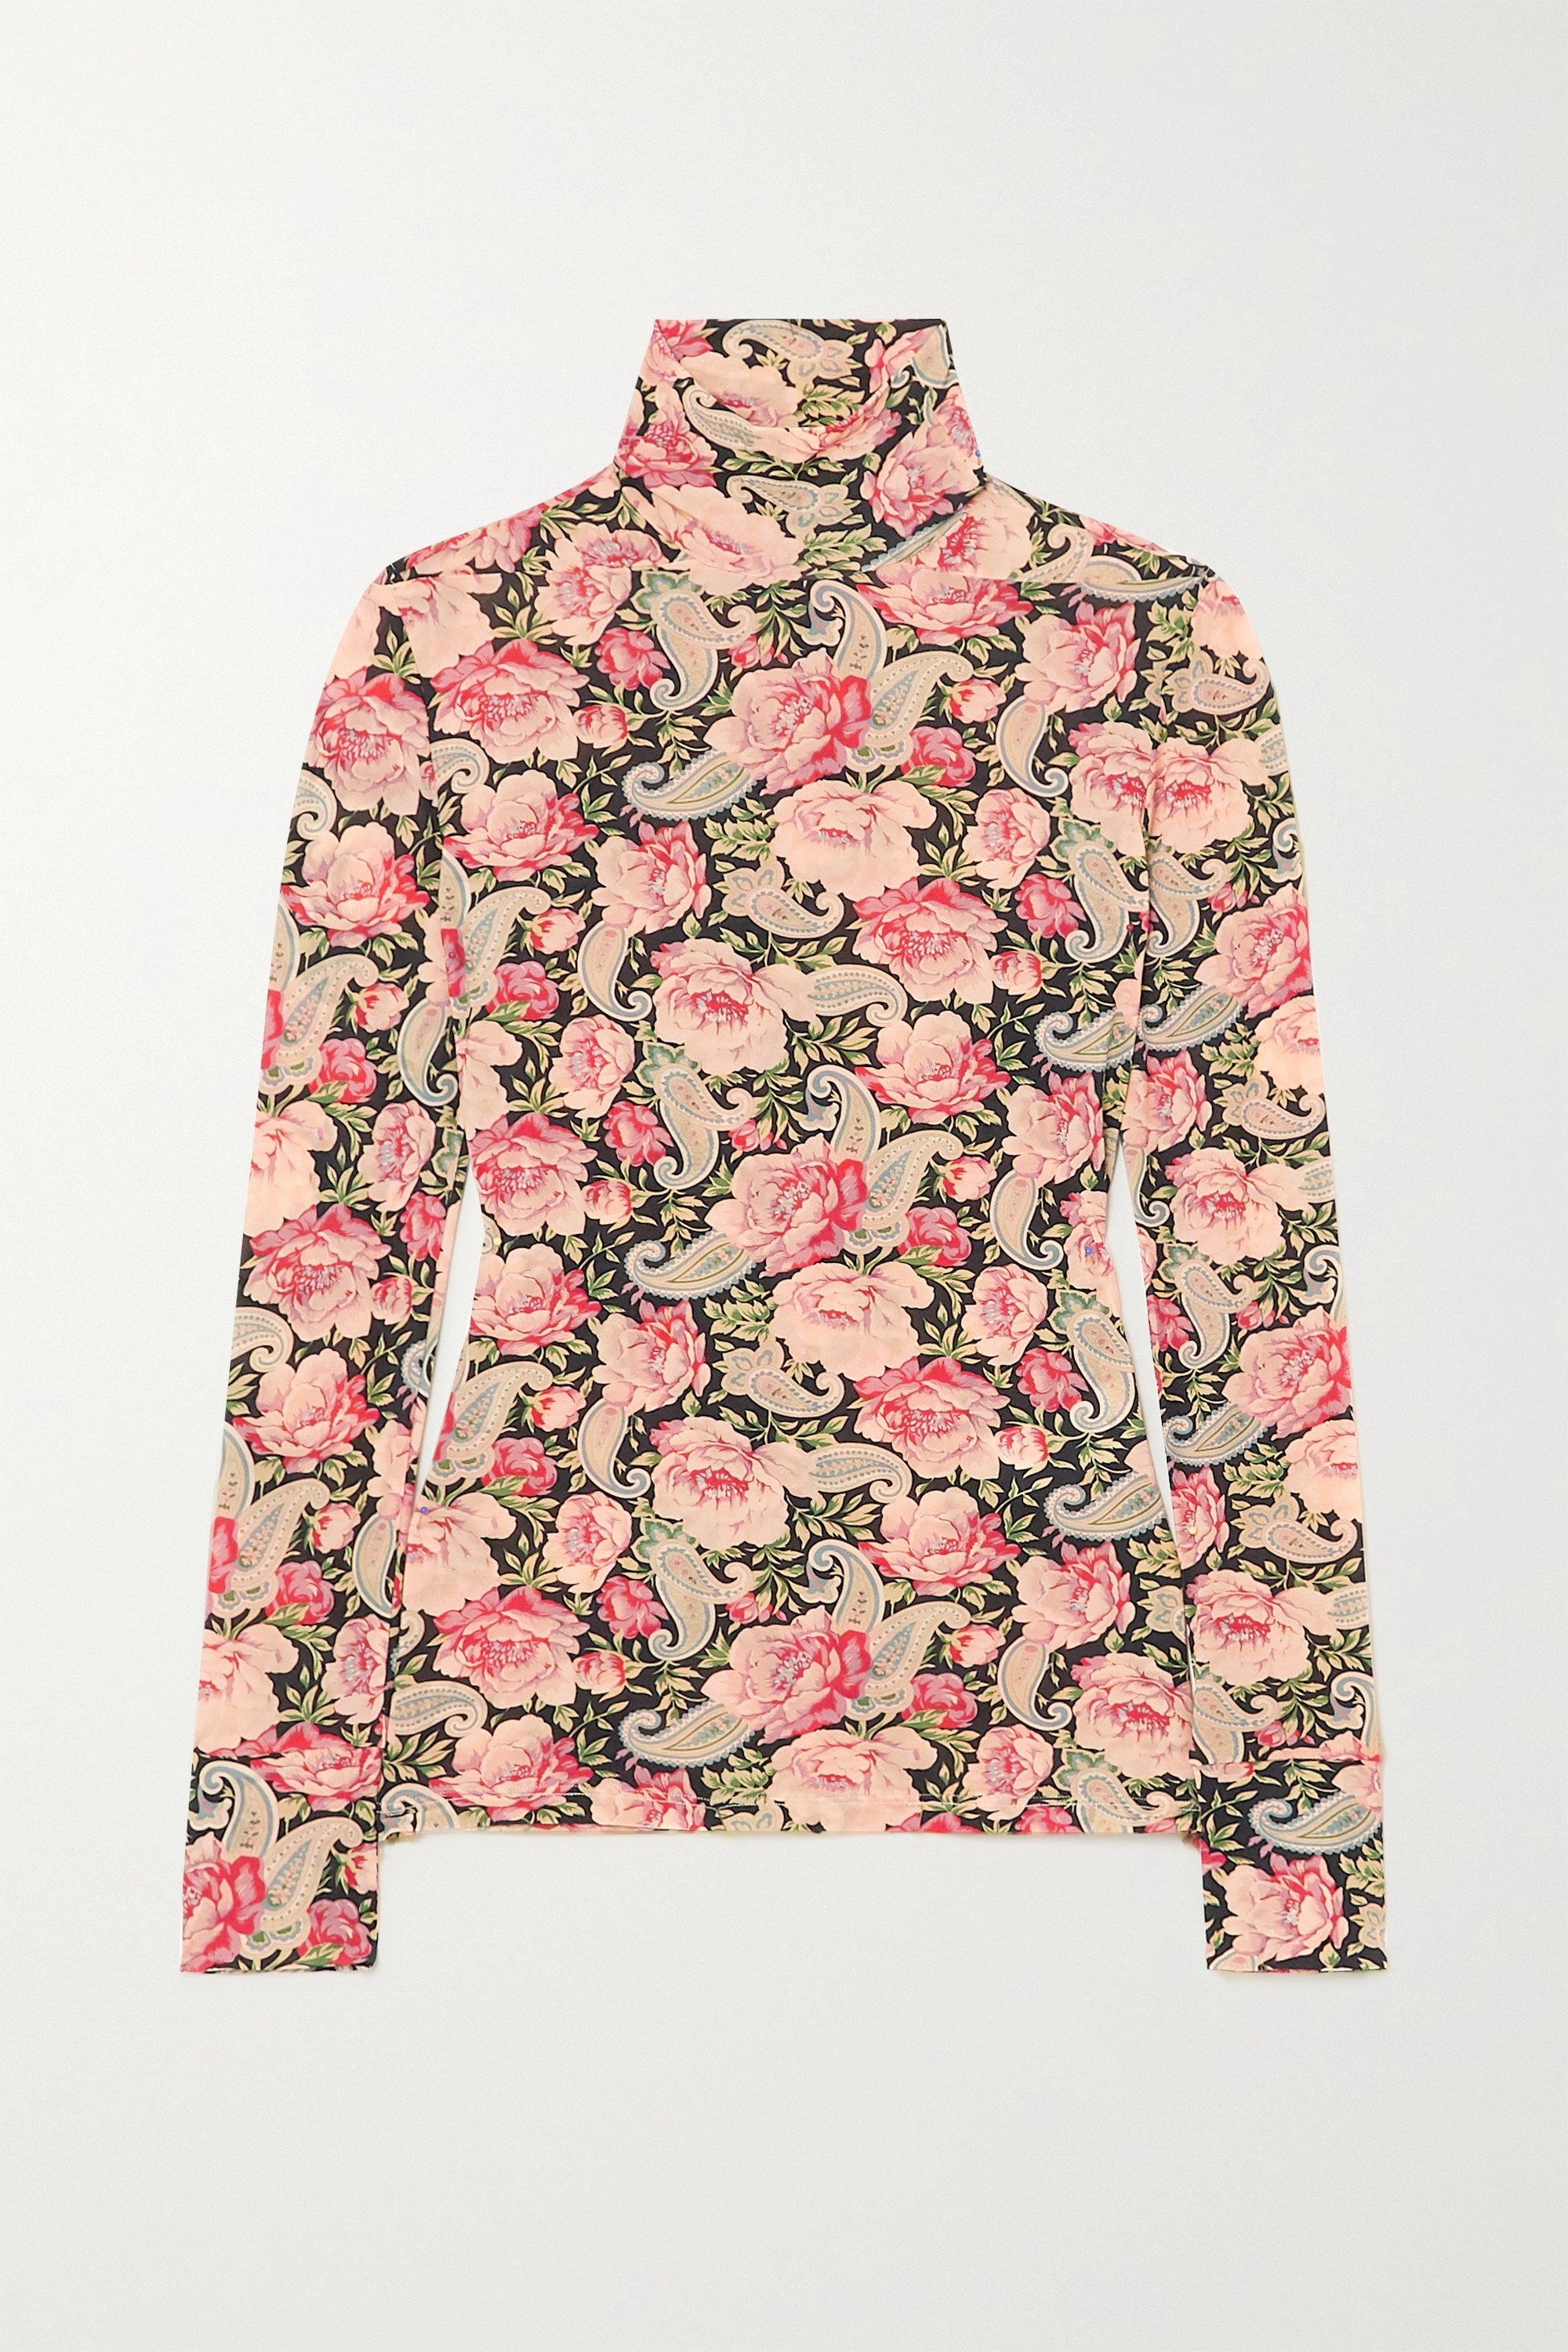 Paco Rabanne Floral-print stretch-jersey turtleneck top